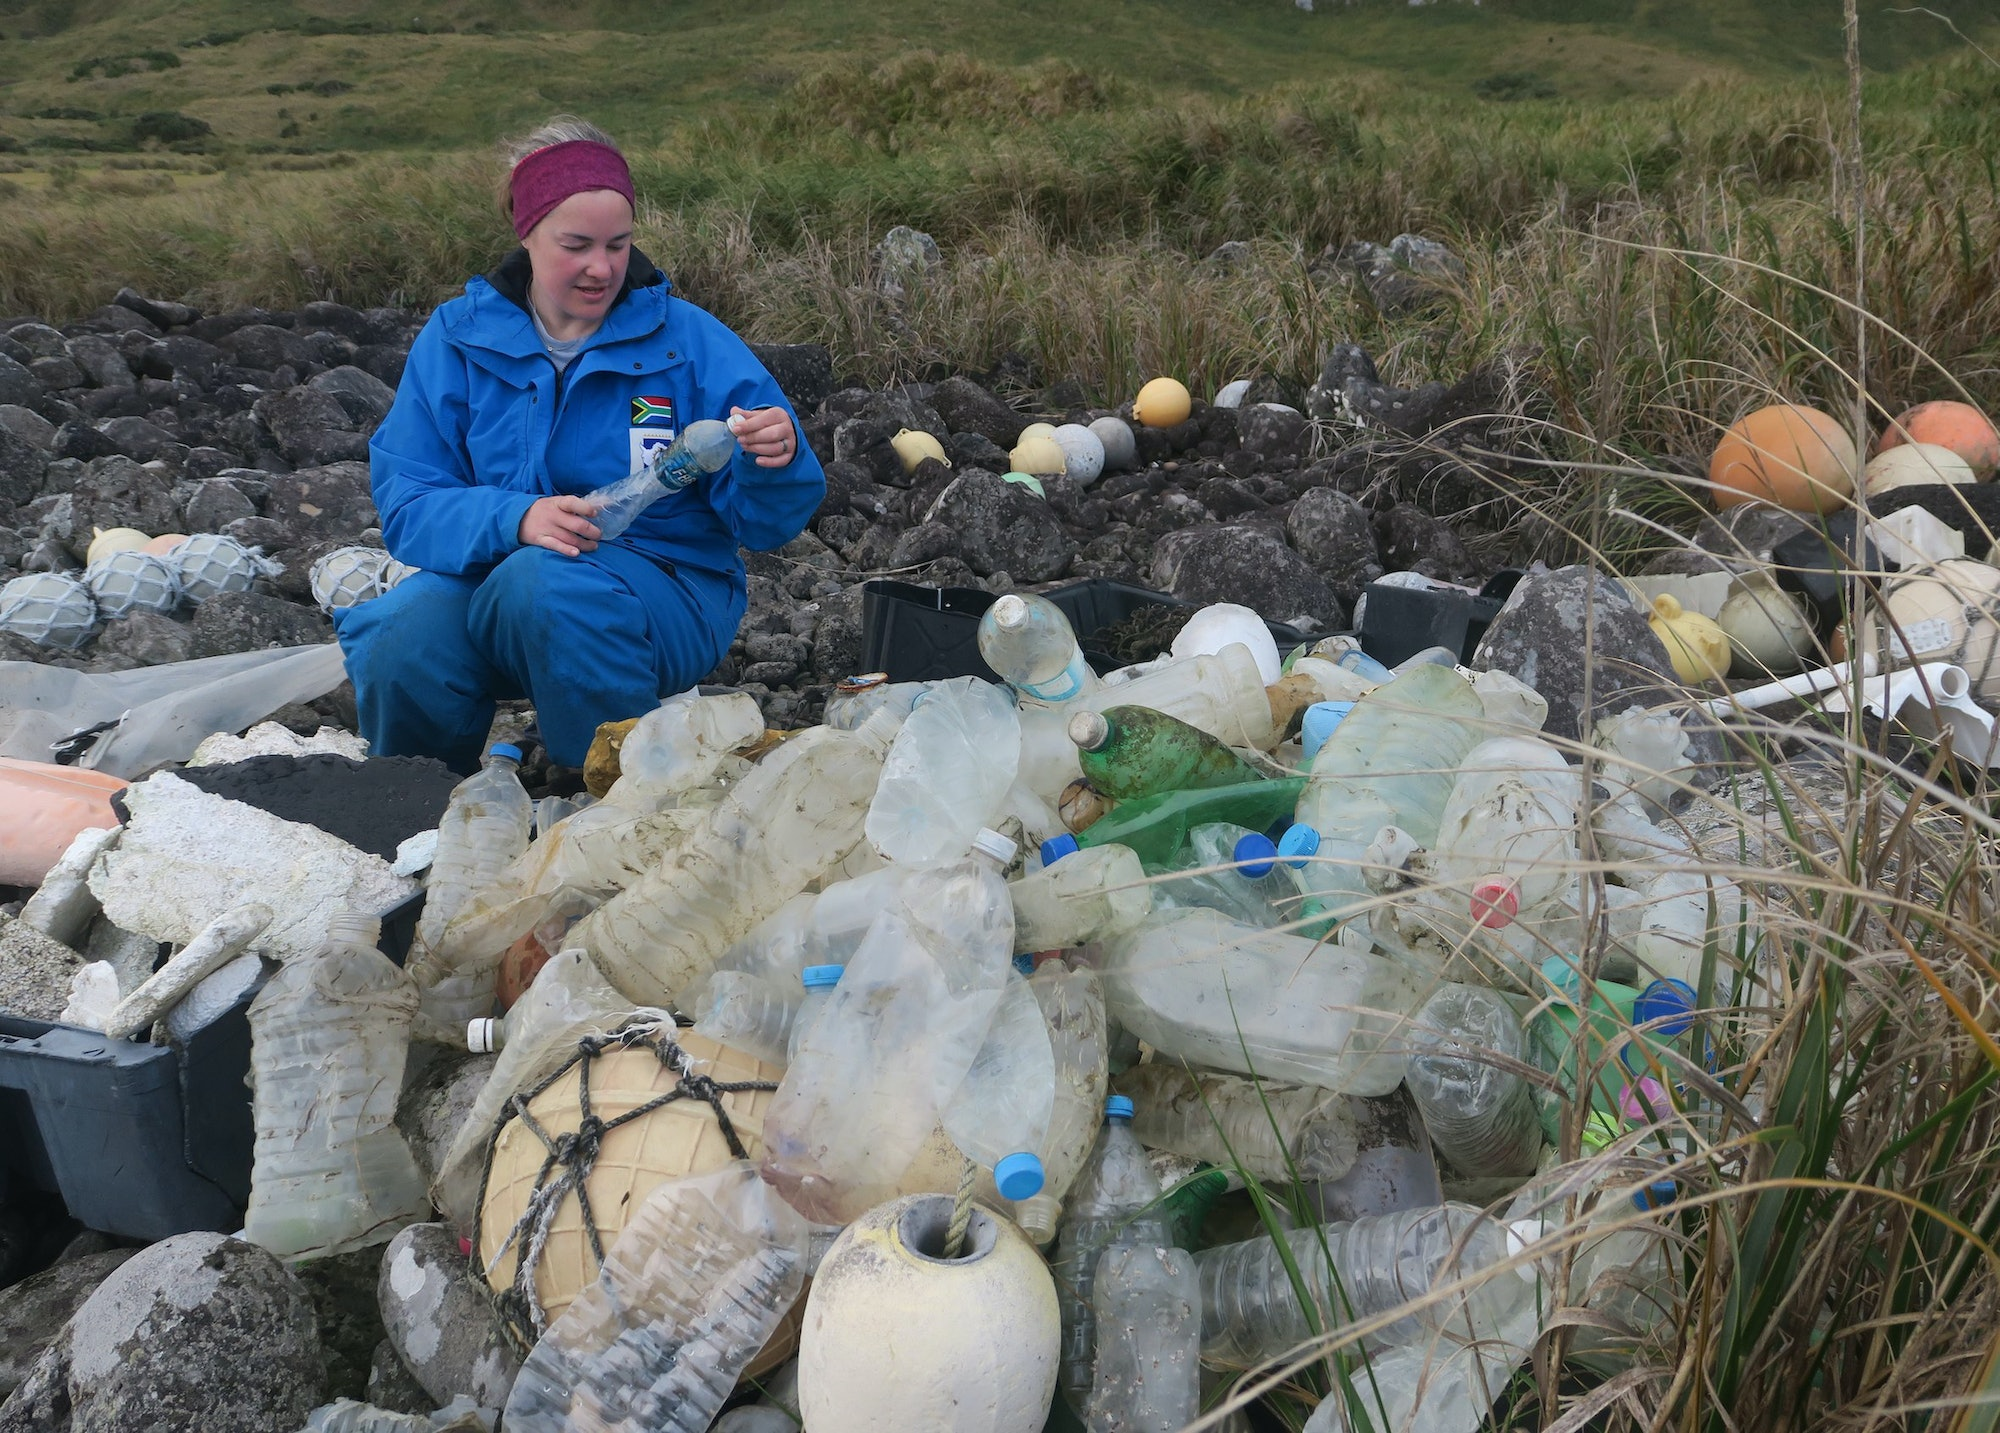 Study co-author Maelle Connan inspects bottles to see where they came from.